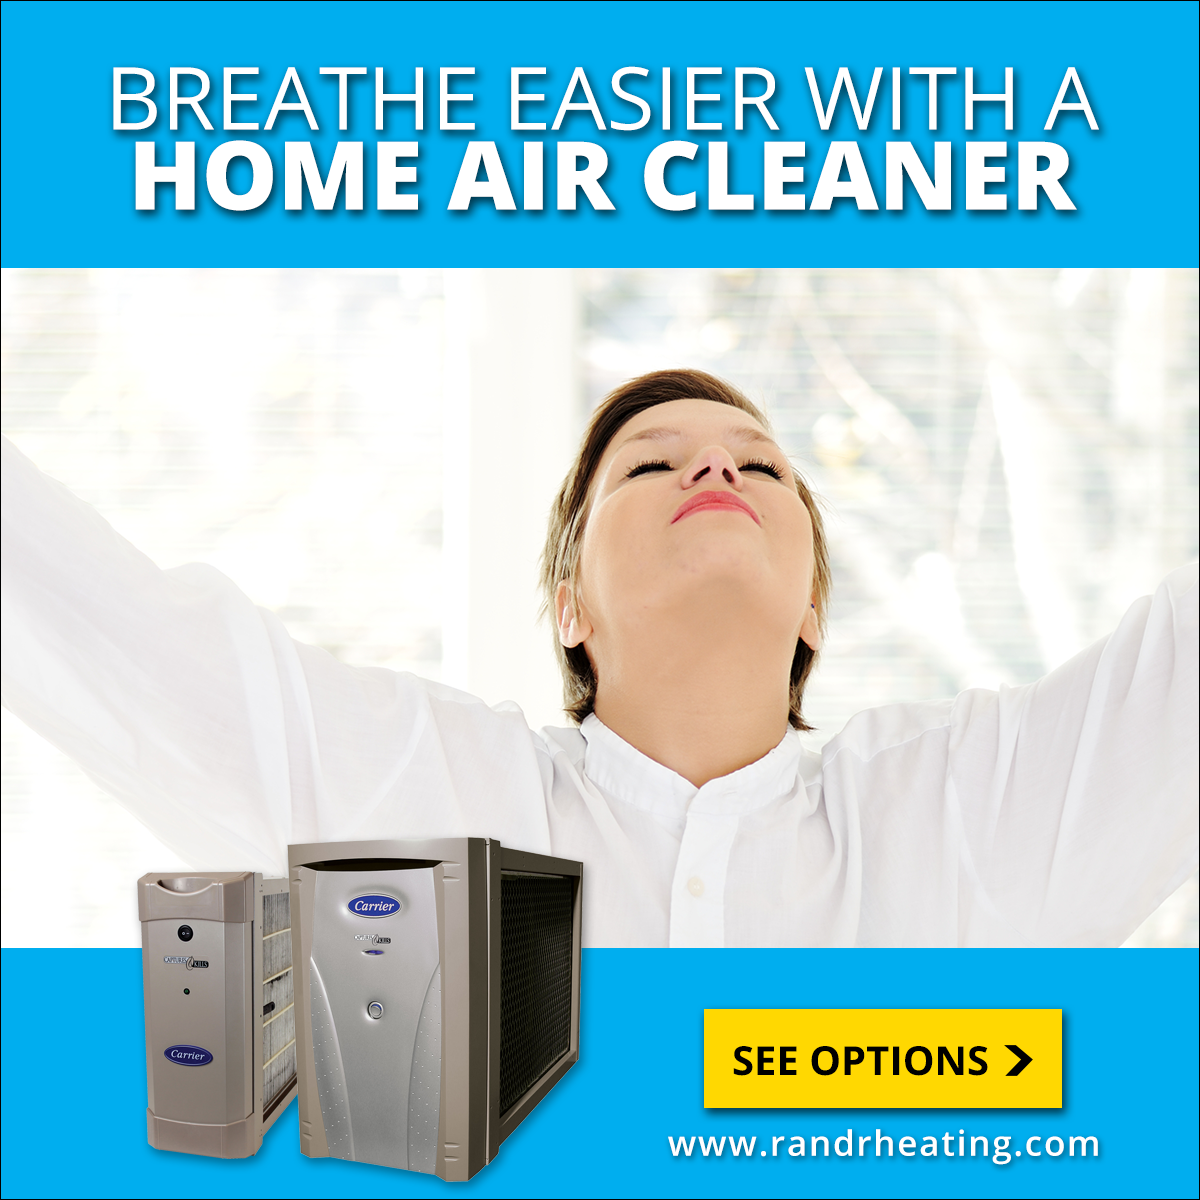 Breathe easy with a home air cleaner Air Purifiers help reduce dust